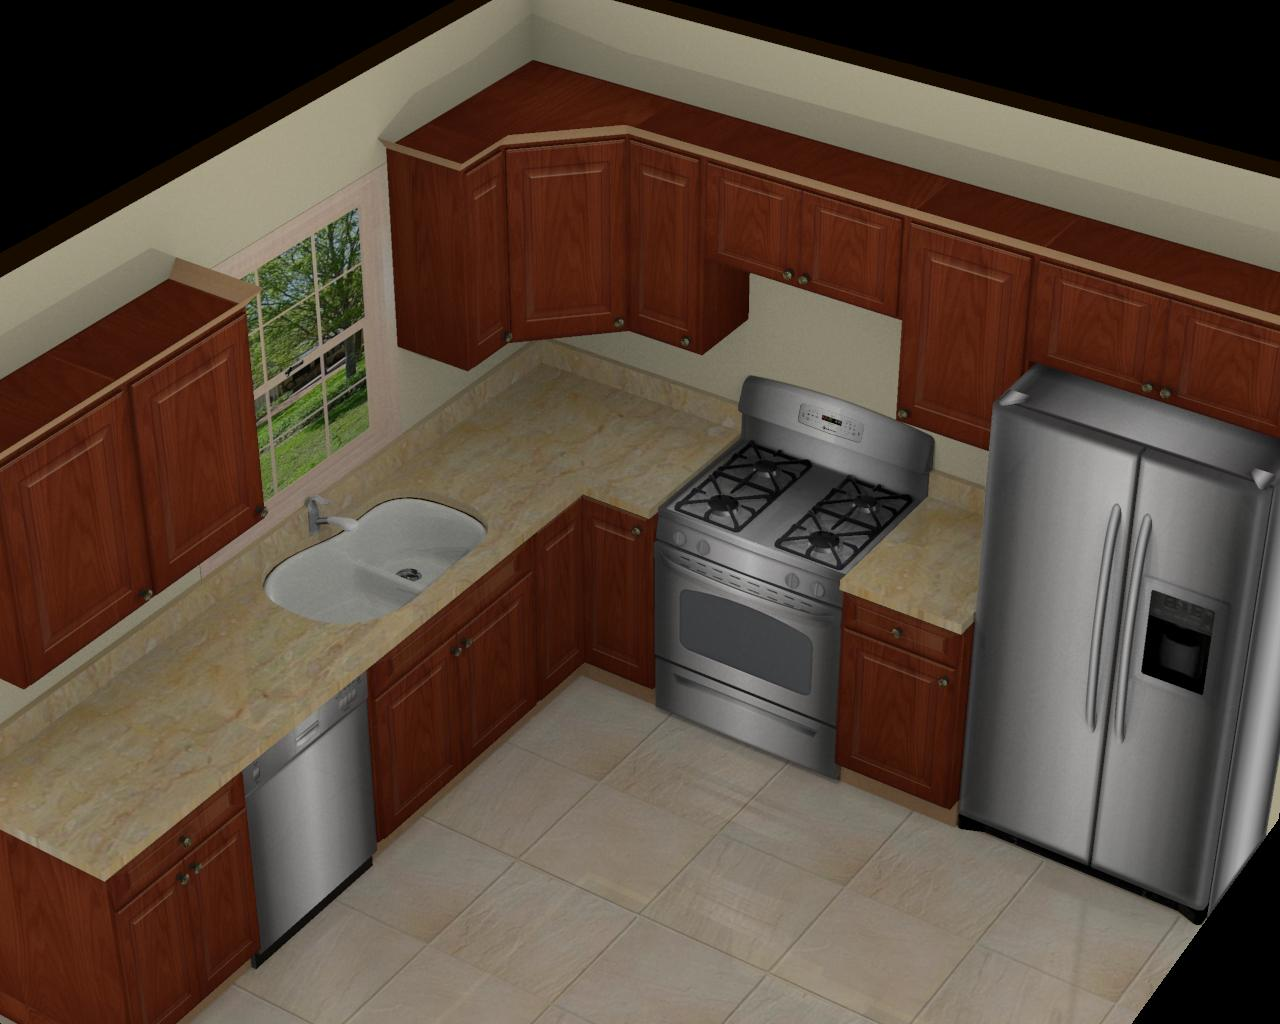 Foundation dezin decor 3d kitchen model design for 11 x 8 kitchen designs